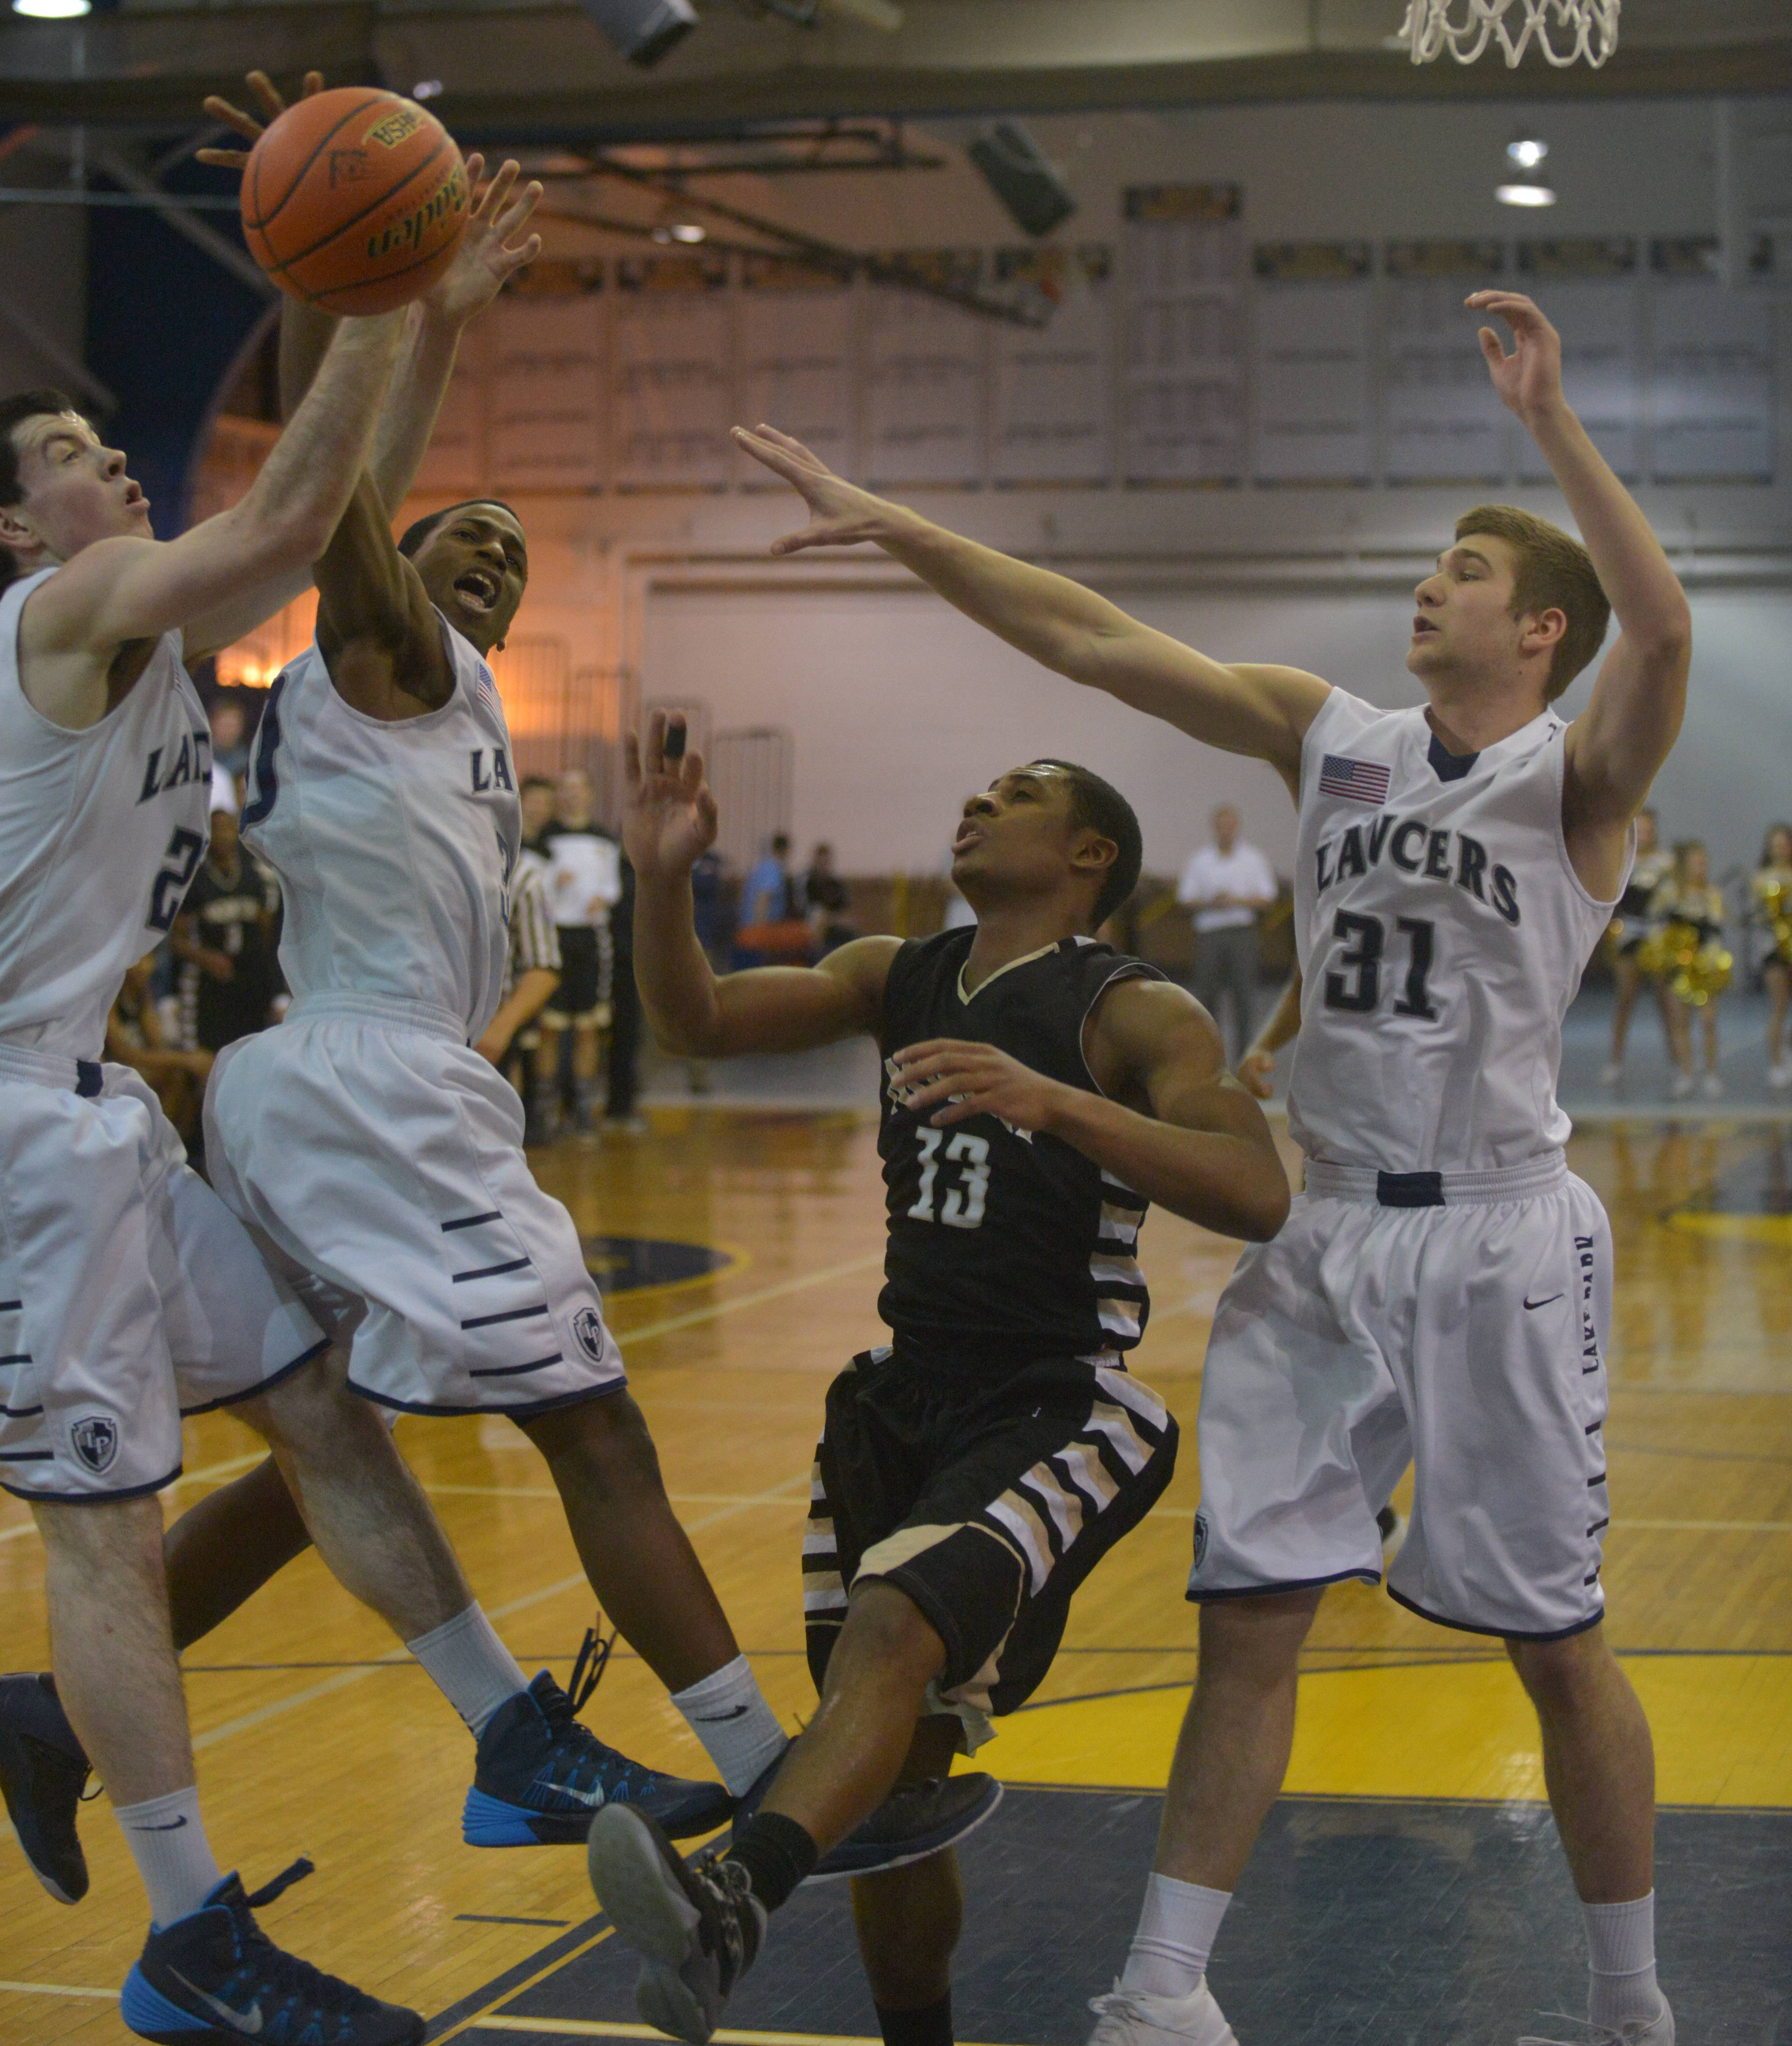 Lake Park vs. Glenbard North Friday, March 7 in a class 4A regional boys basketball final game at Leyden Twp. High School in Franklin Park.